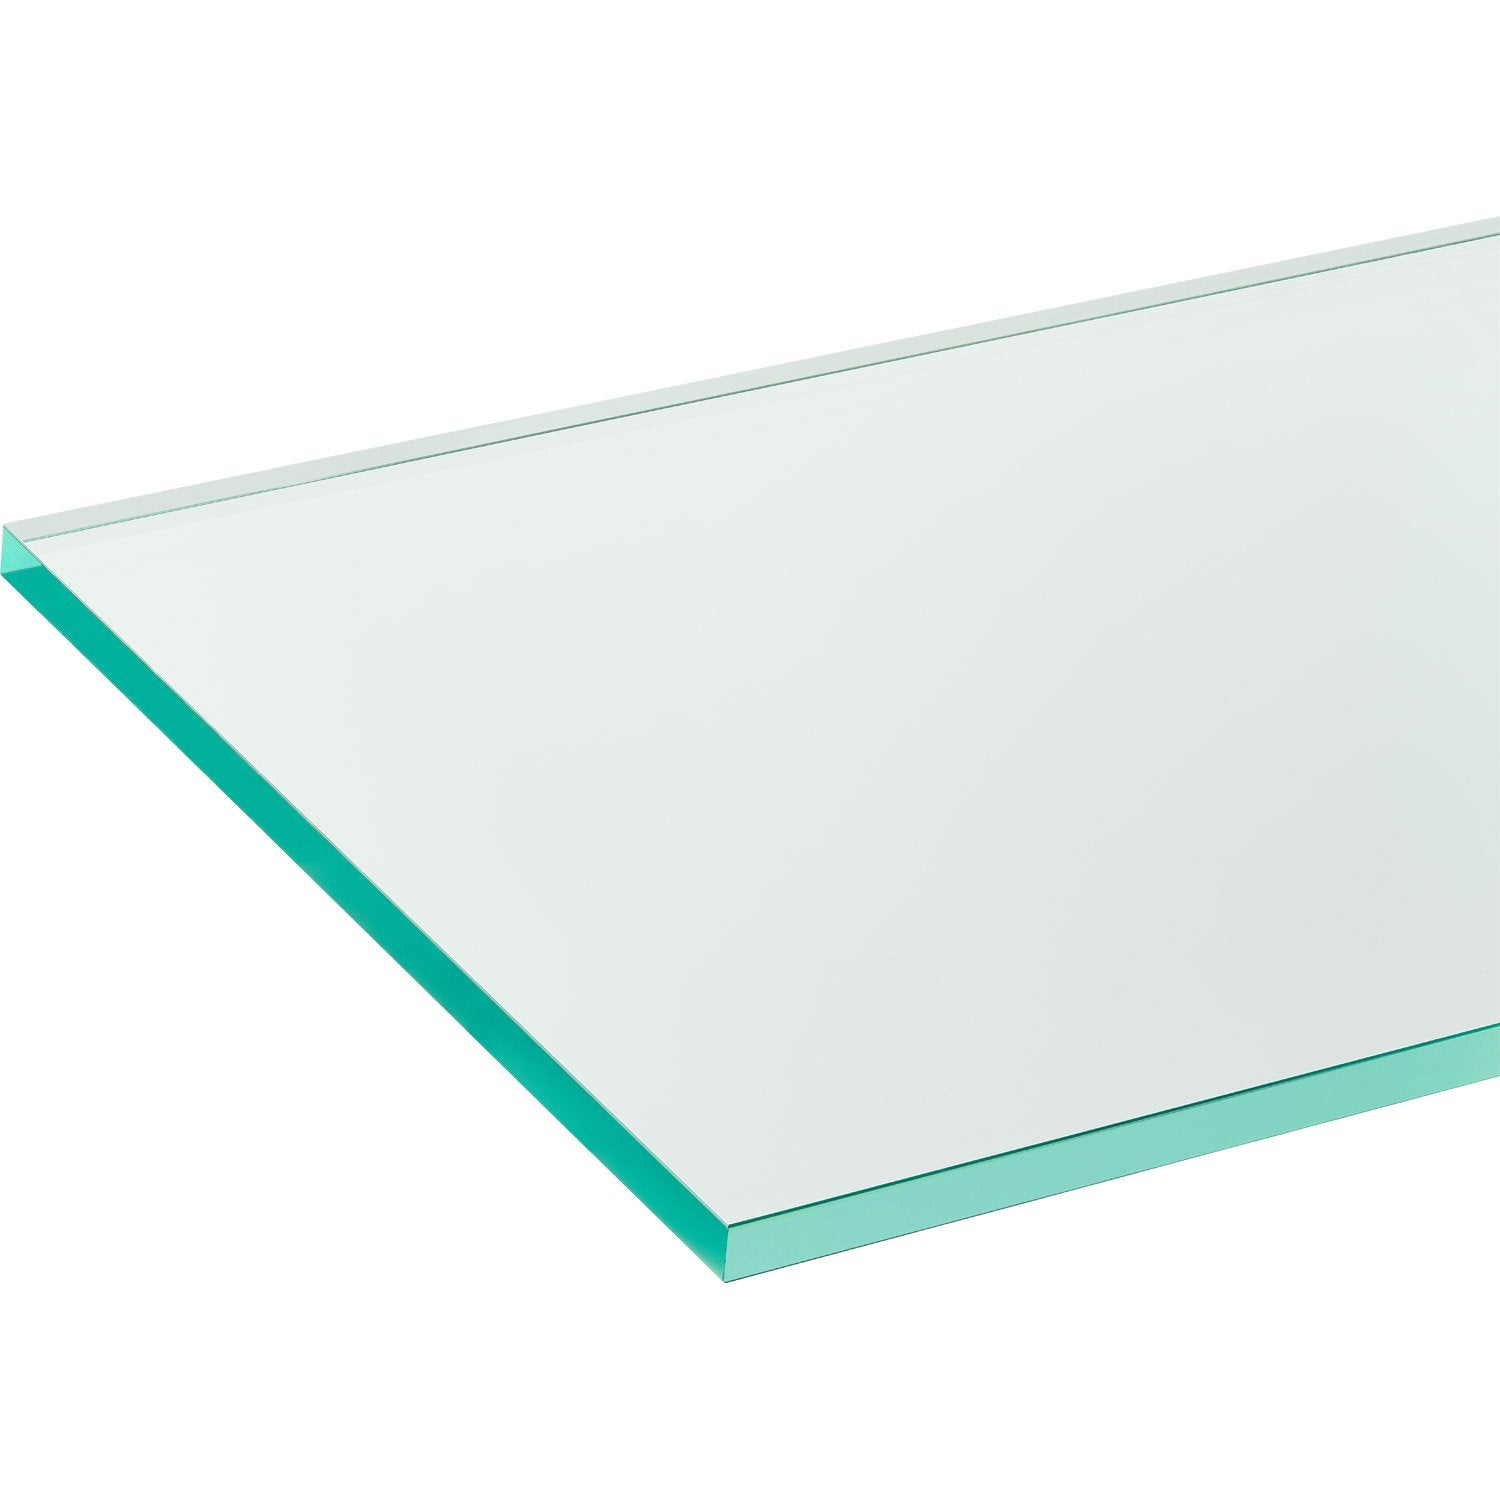 Verre Clair 4 Mm Transparent L 200 X L 98 Cm Leroy Merlin